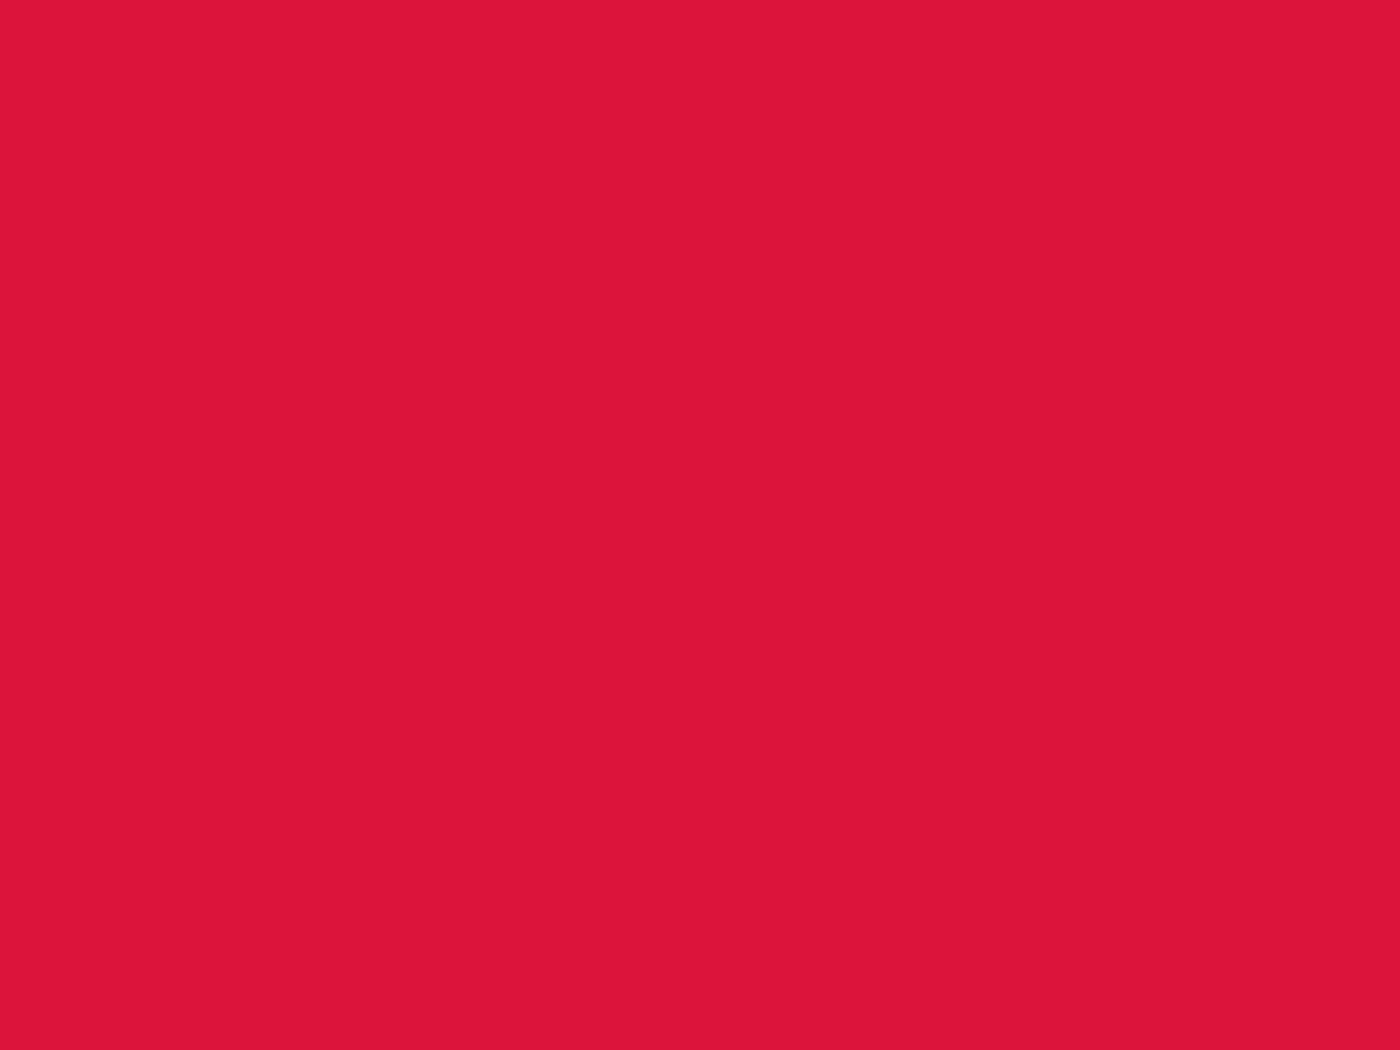 1400x1050 Crimson Solid Color Background